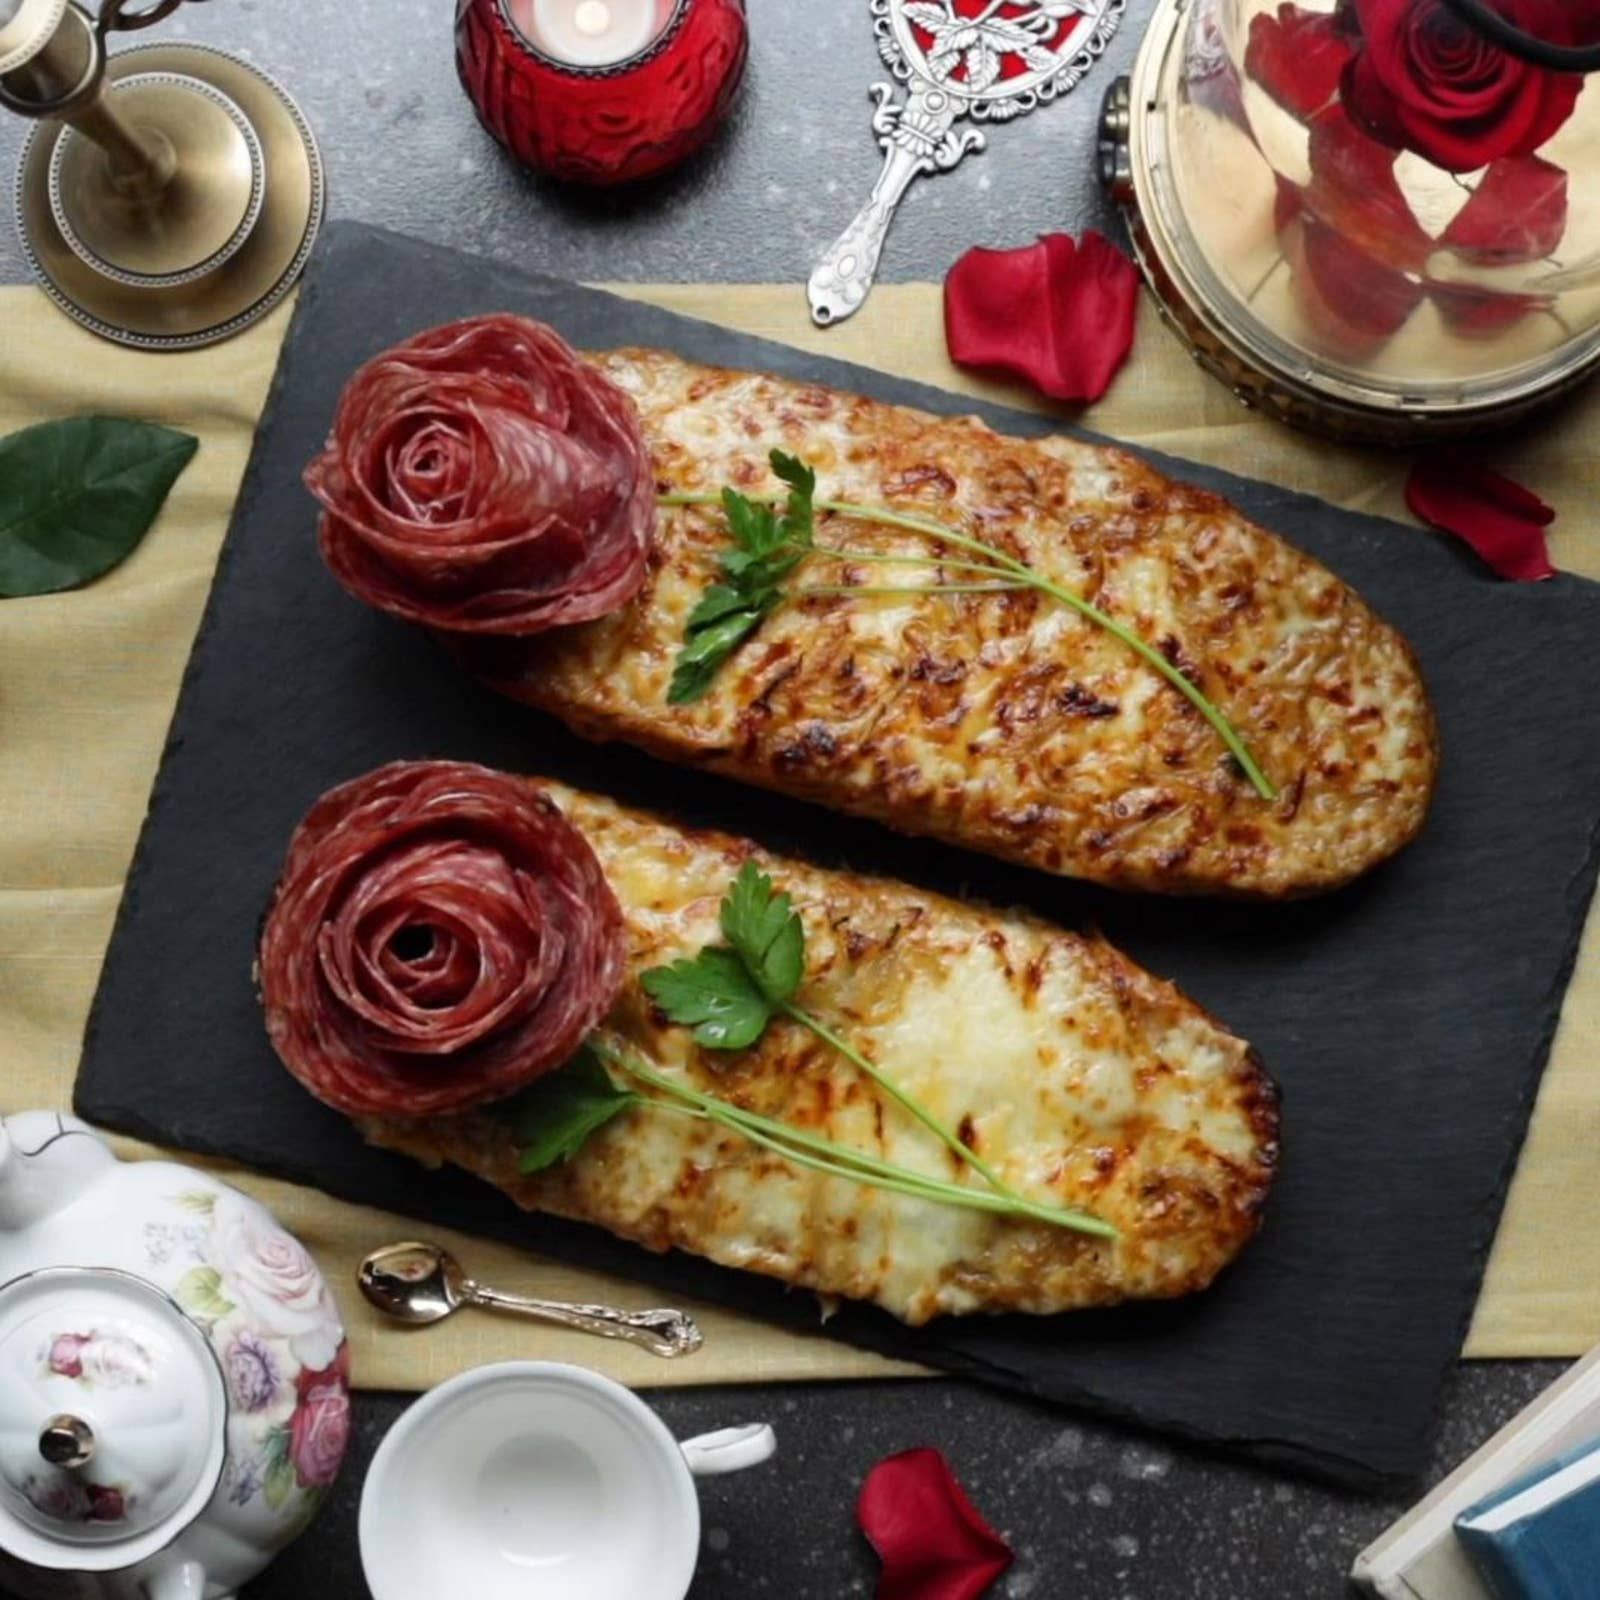 Beauty And The Beast-Inspired French Bread Pizza